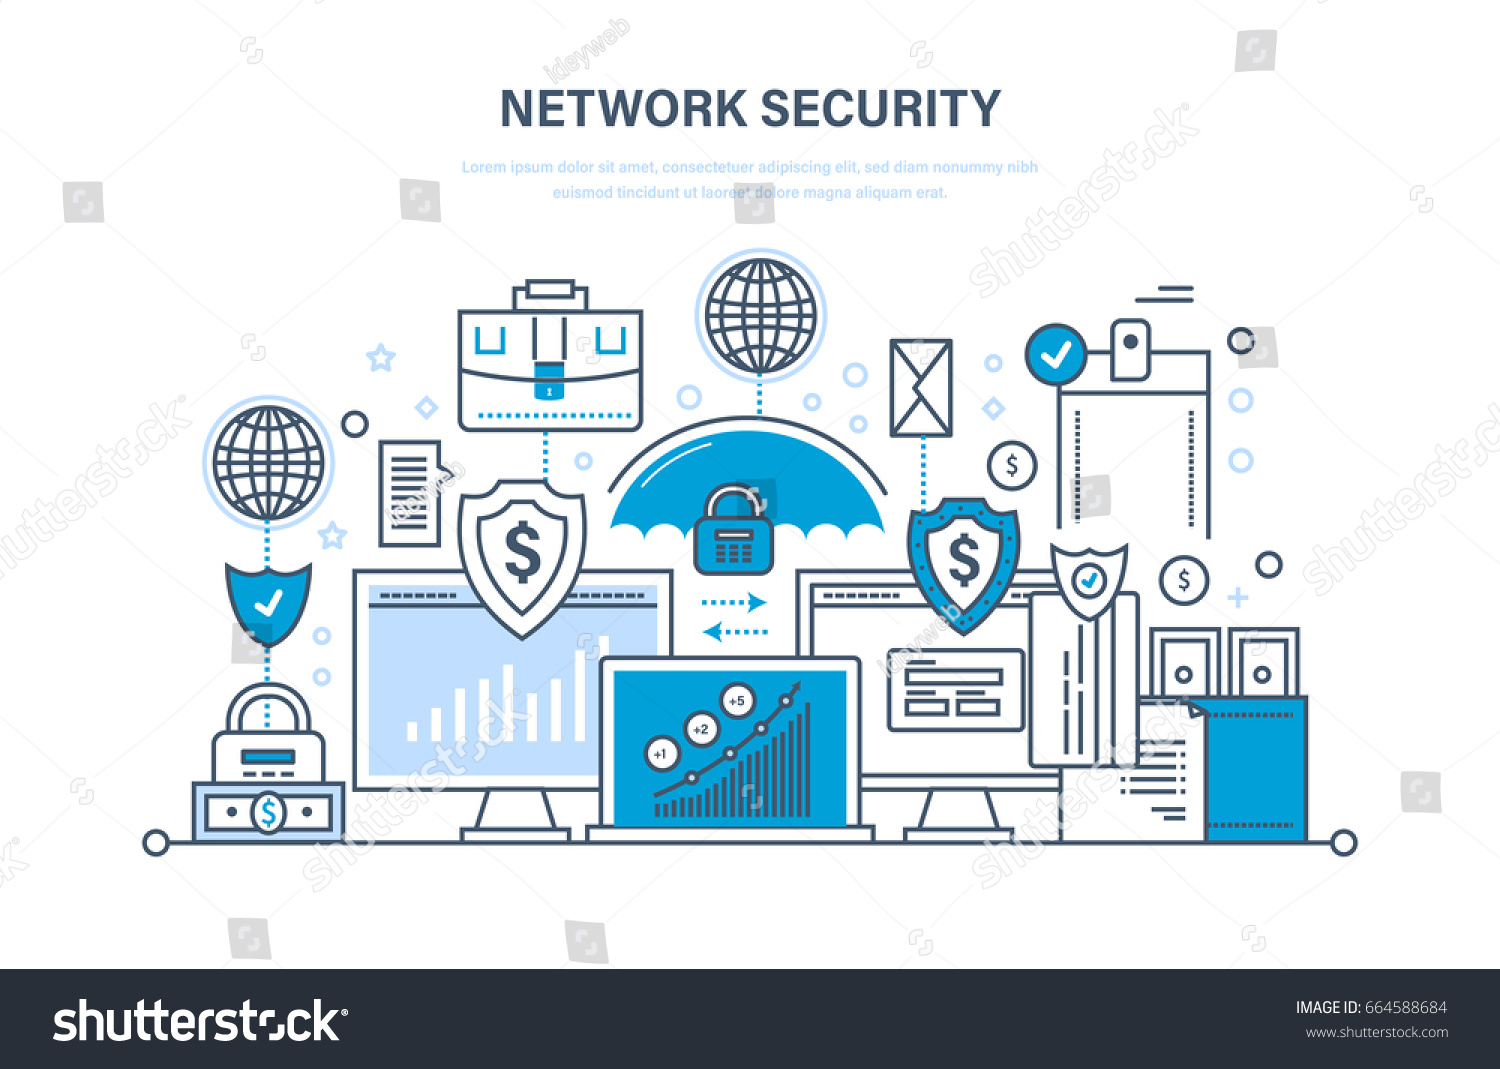 Network Security Personal Data Protection Payment Stock Vector Database And Secure Preservation Confidentiality